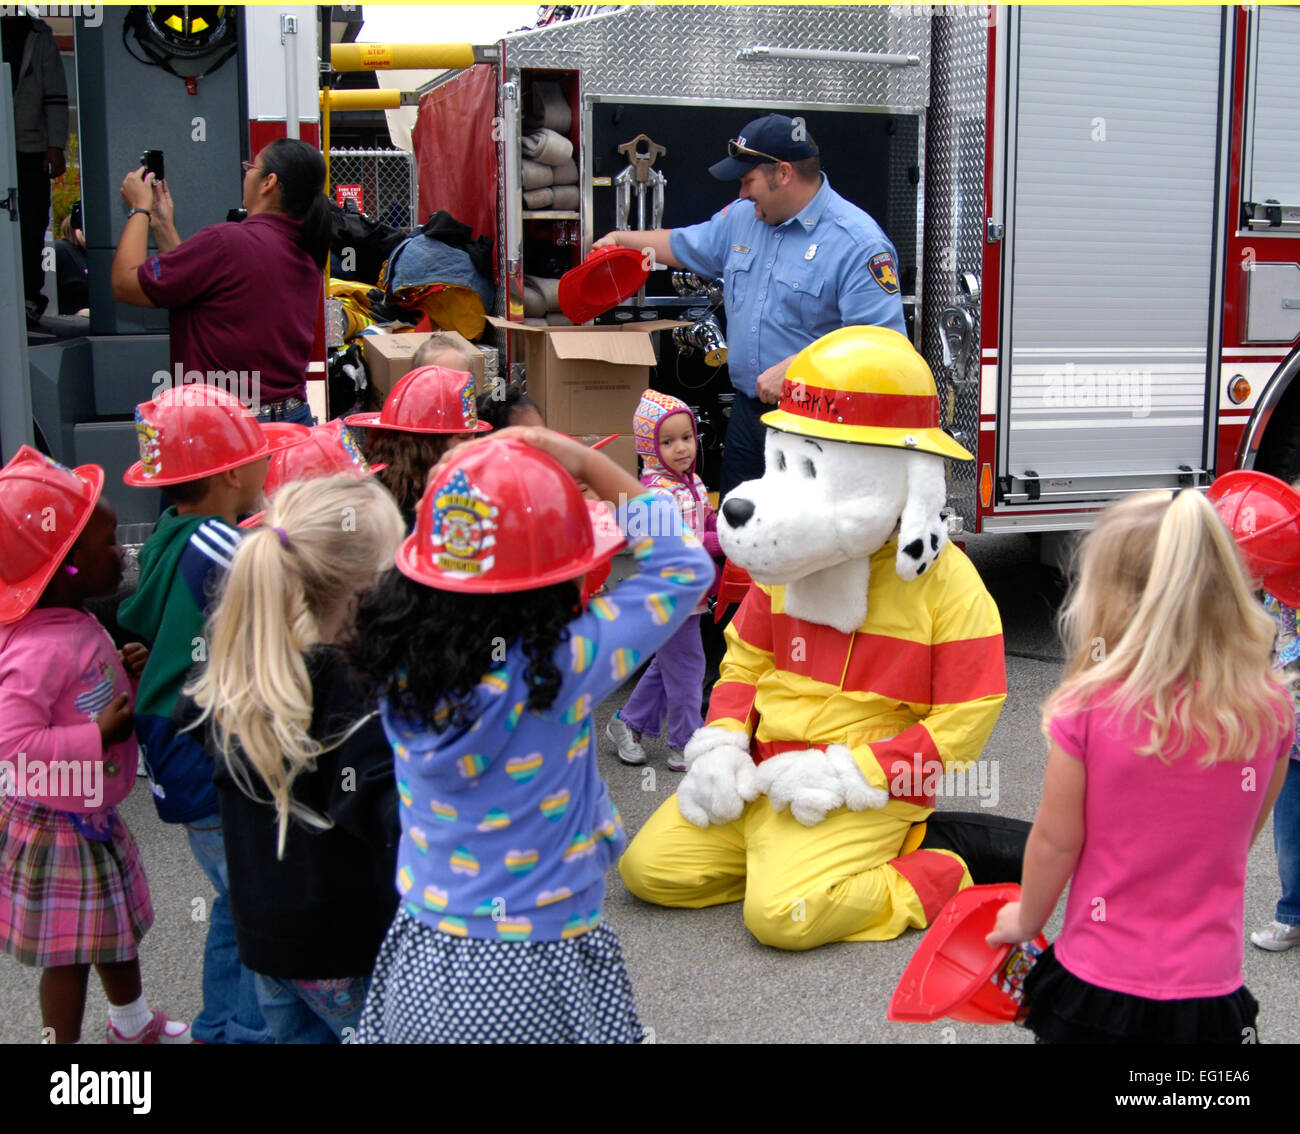 Sparky The Fire Dog Plays With Children During A Prevention Awareness Event At Child